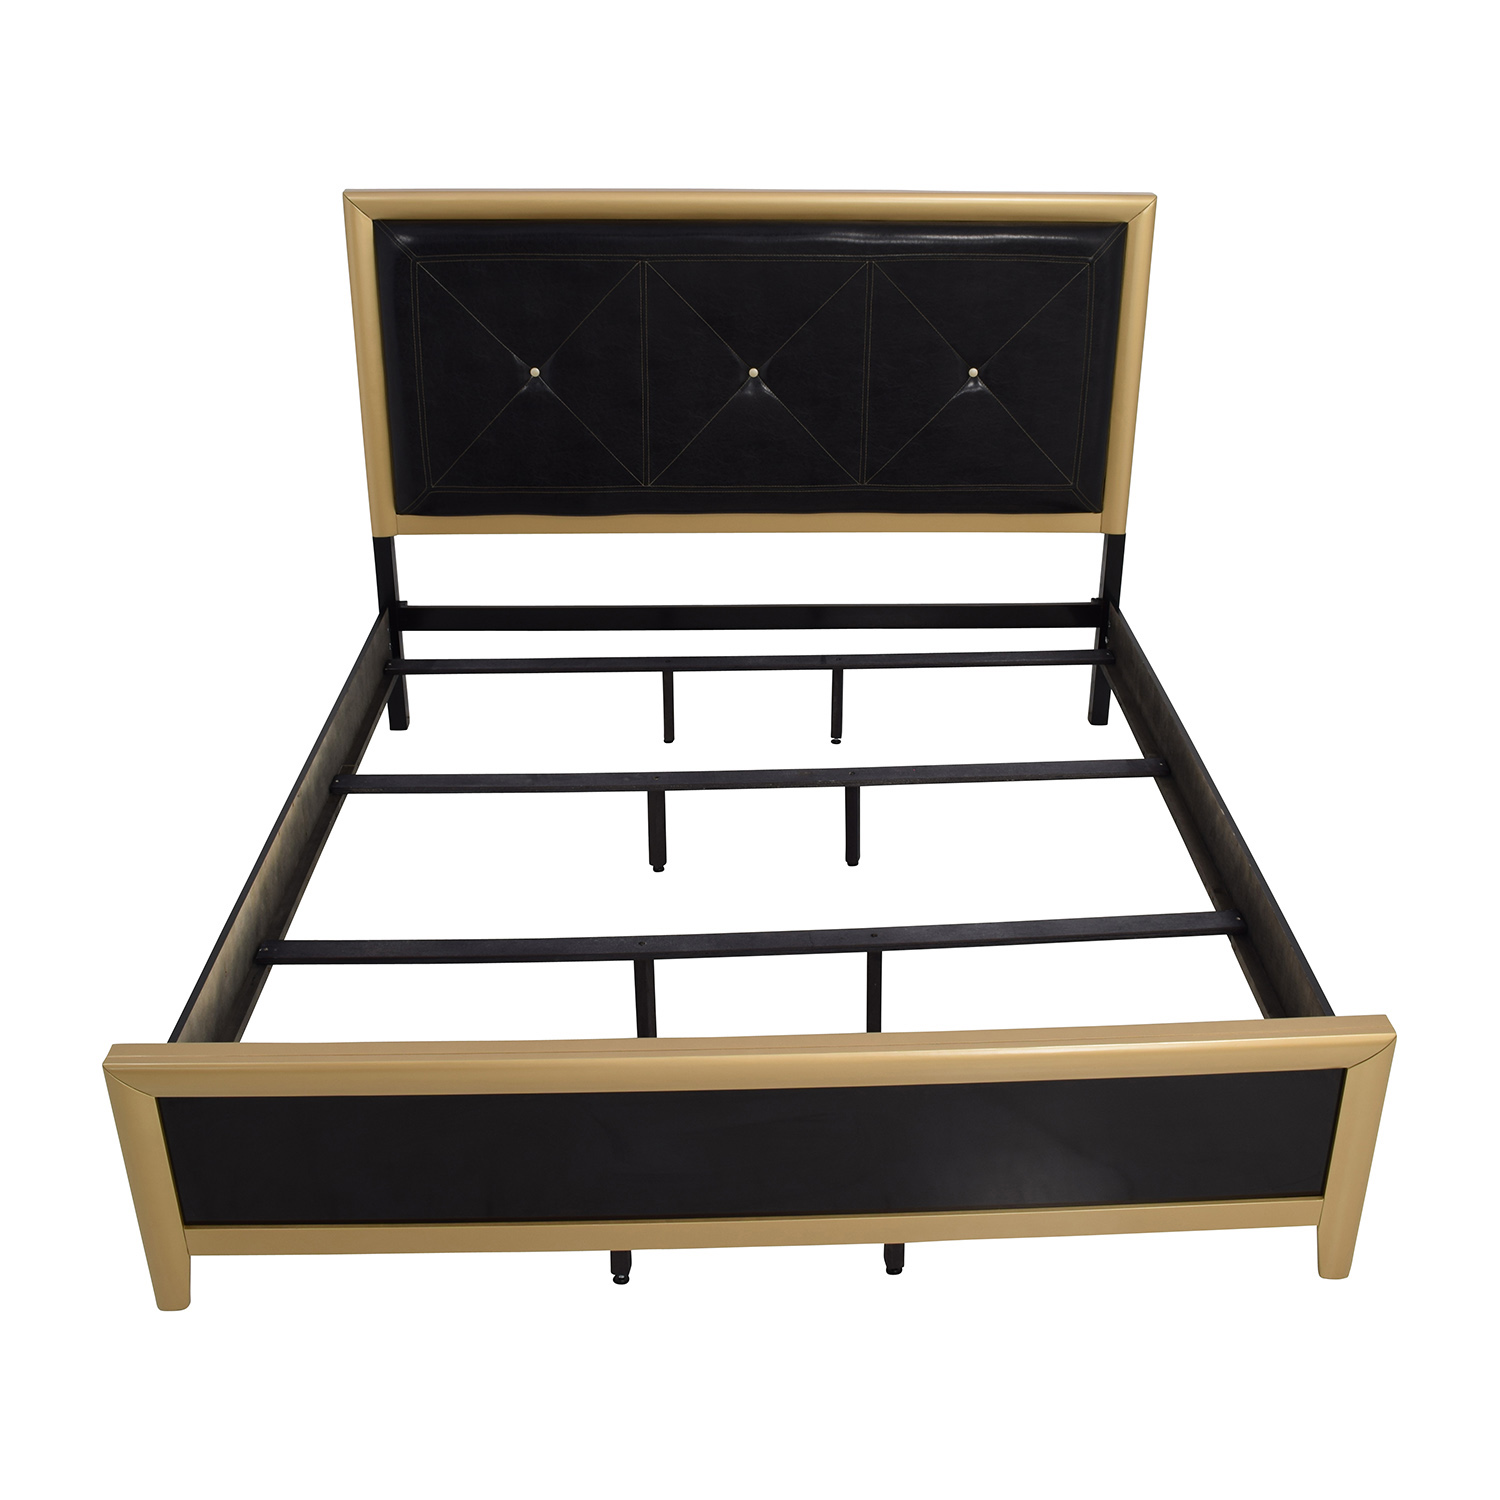 Coaster Furniture Coaster Furniture Black with Gold and Leather Eastern King Bed